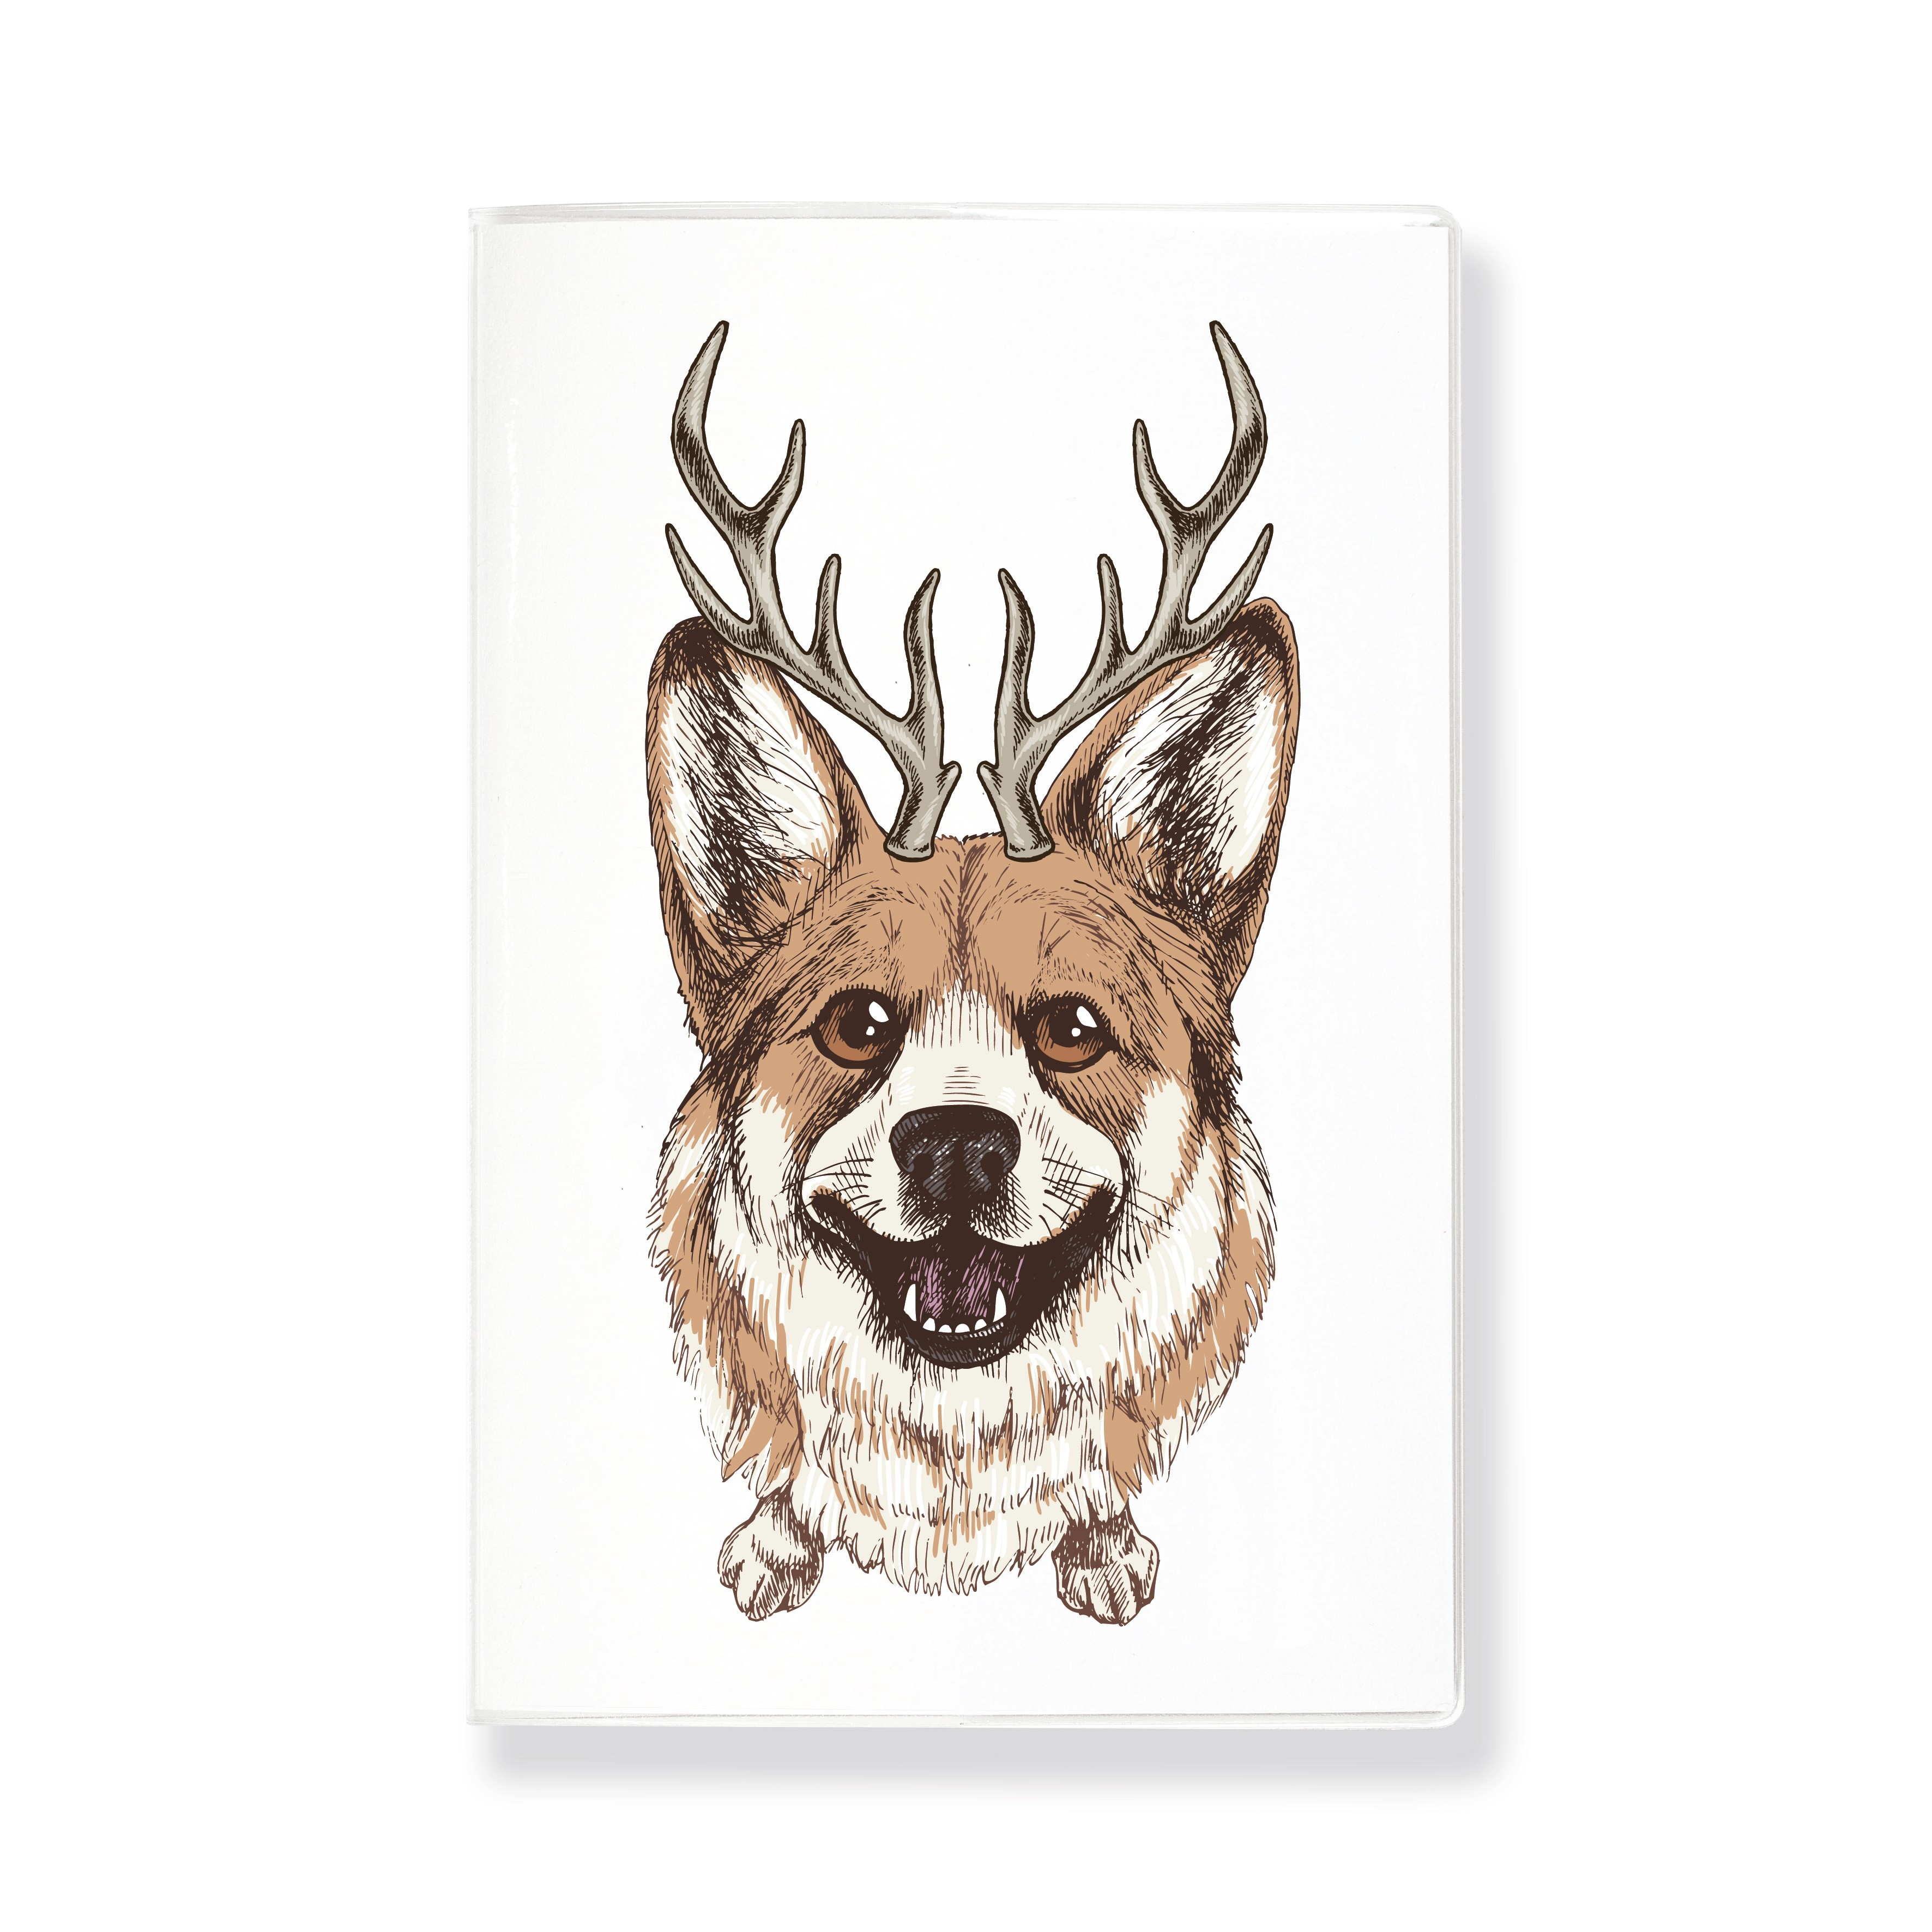 Скетчбук для зарисовок HANDY CORGI DEER 120г/кв.м 140х210мм 30л. по 441.00 руб от Sputnik